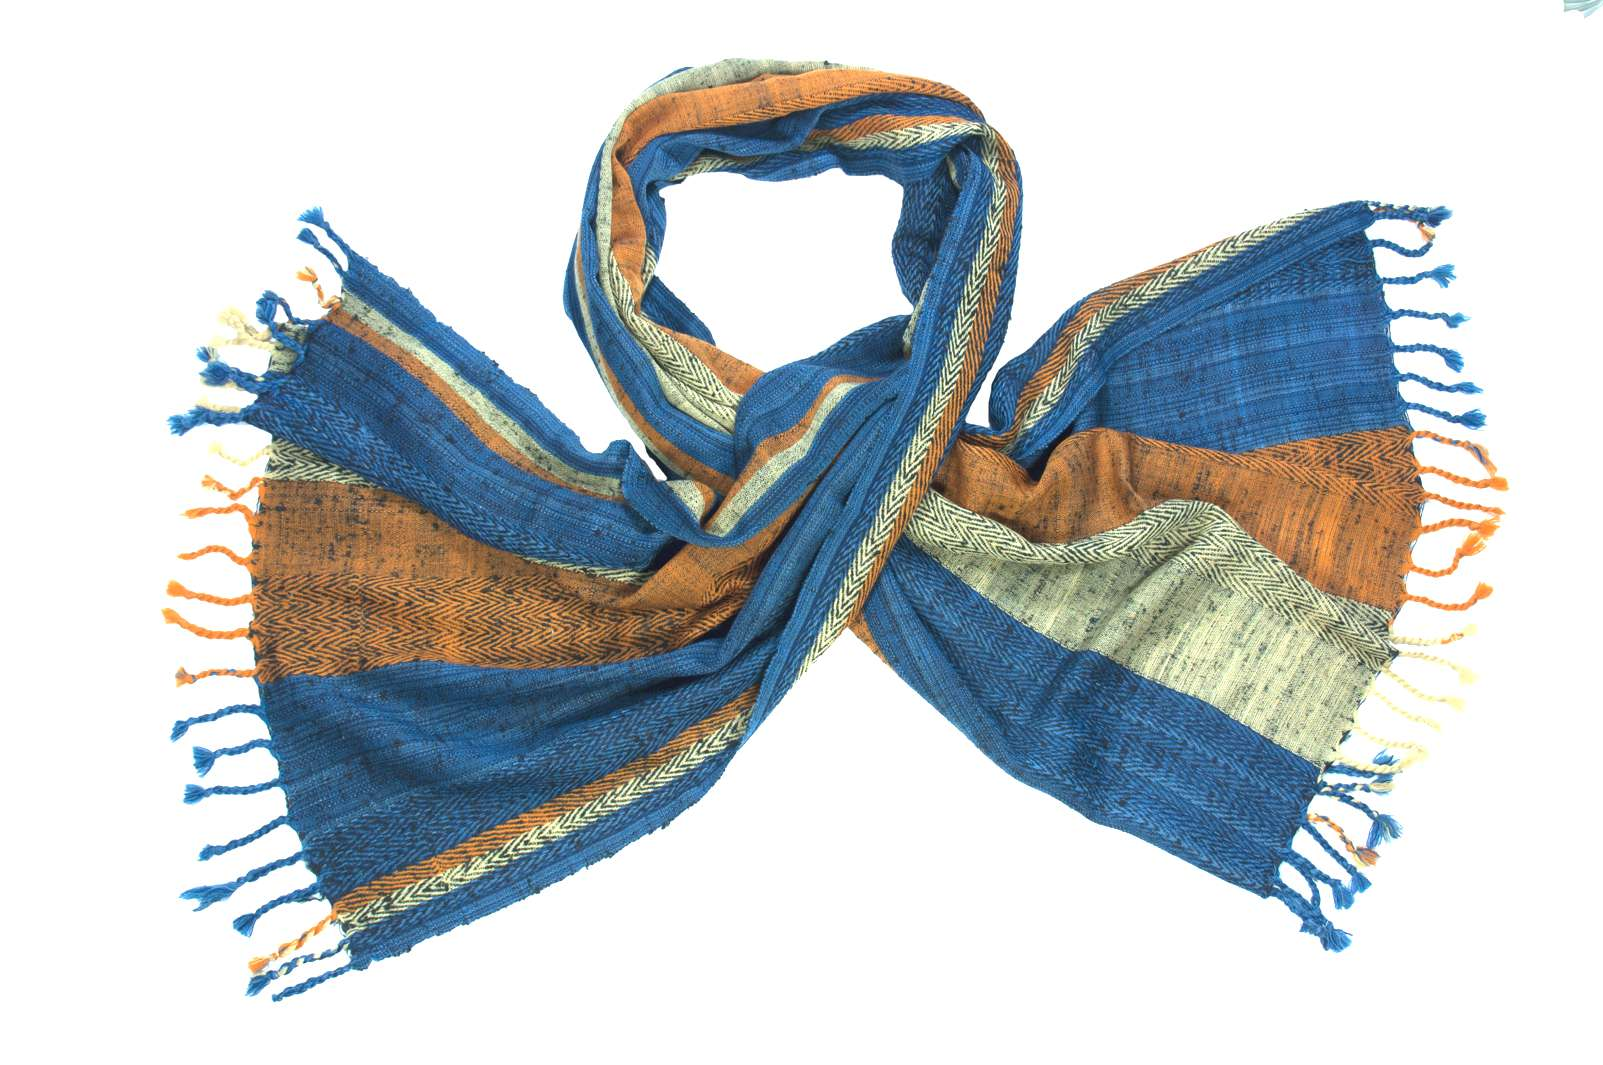 Wool shawl from India